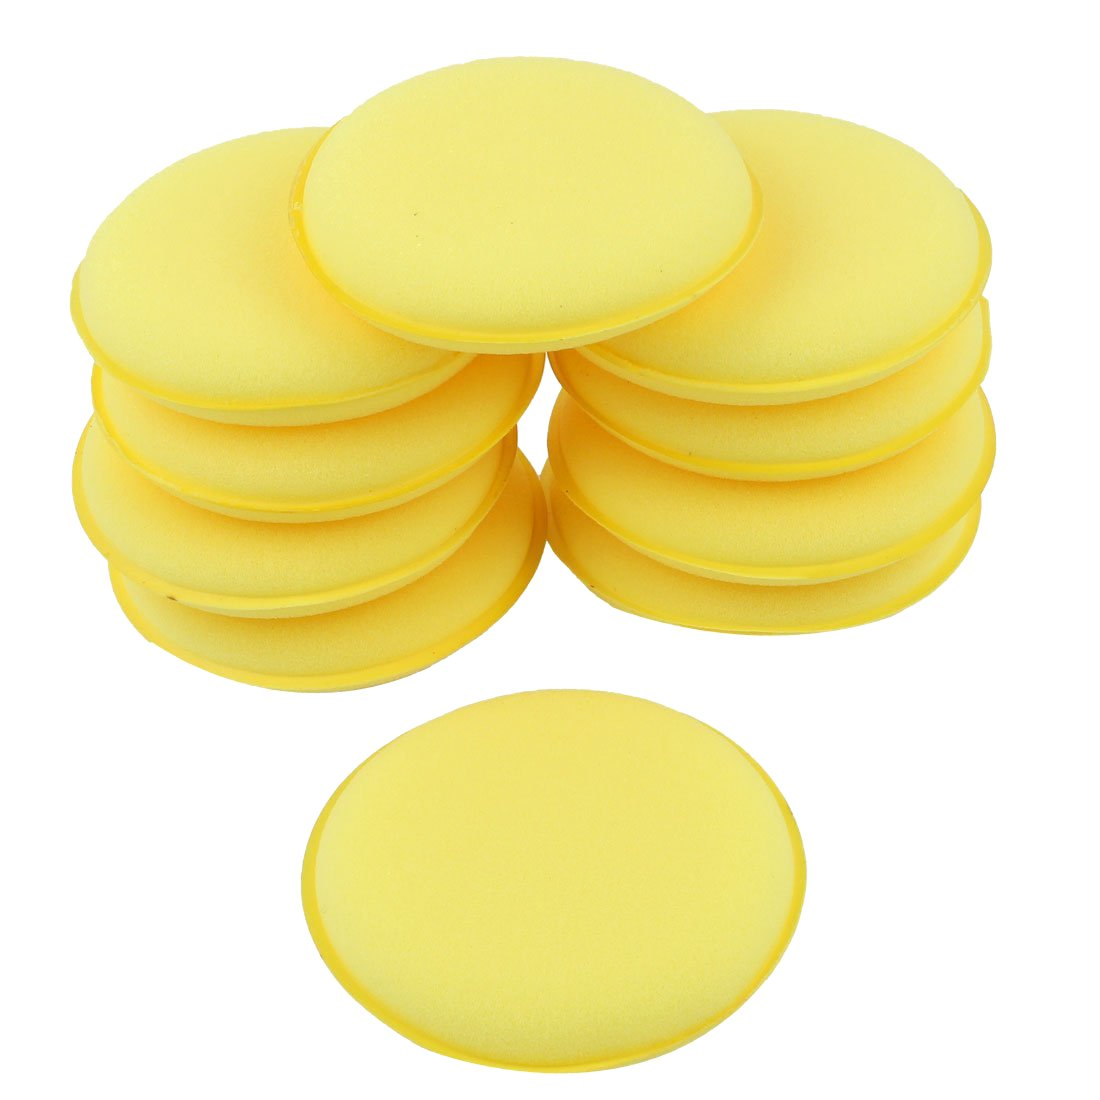 SODIAL(R) 10 Pcs Round Shaped 4 inch Dia Sponge Wax Applicator Pads Yellow 060461